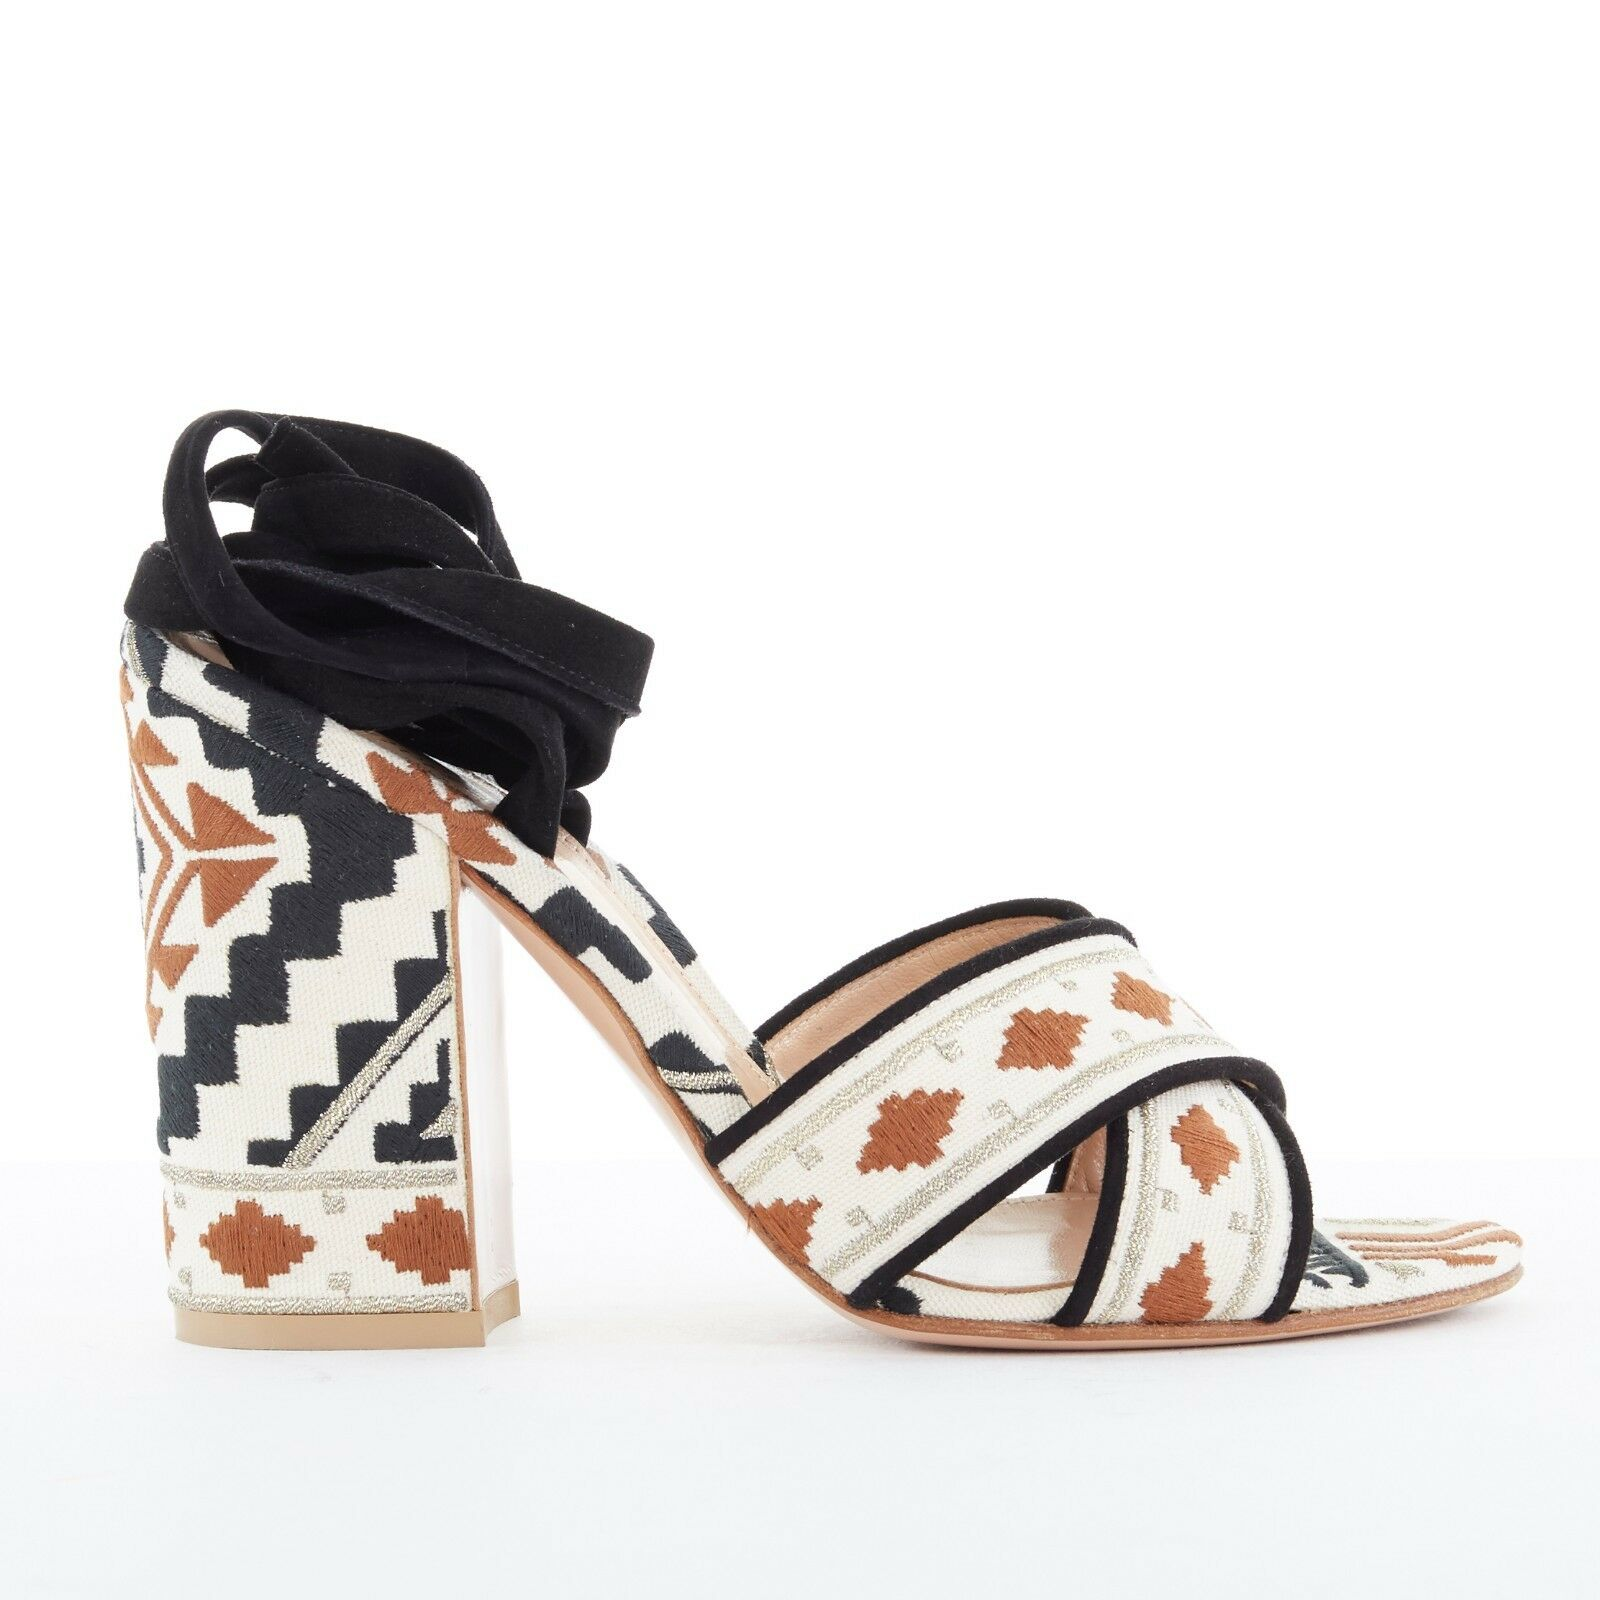 GIANVITO ROSSI tribal ethnic embroiderouge canvas suede wrap chunky sandals EU37